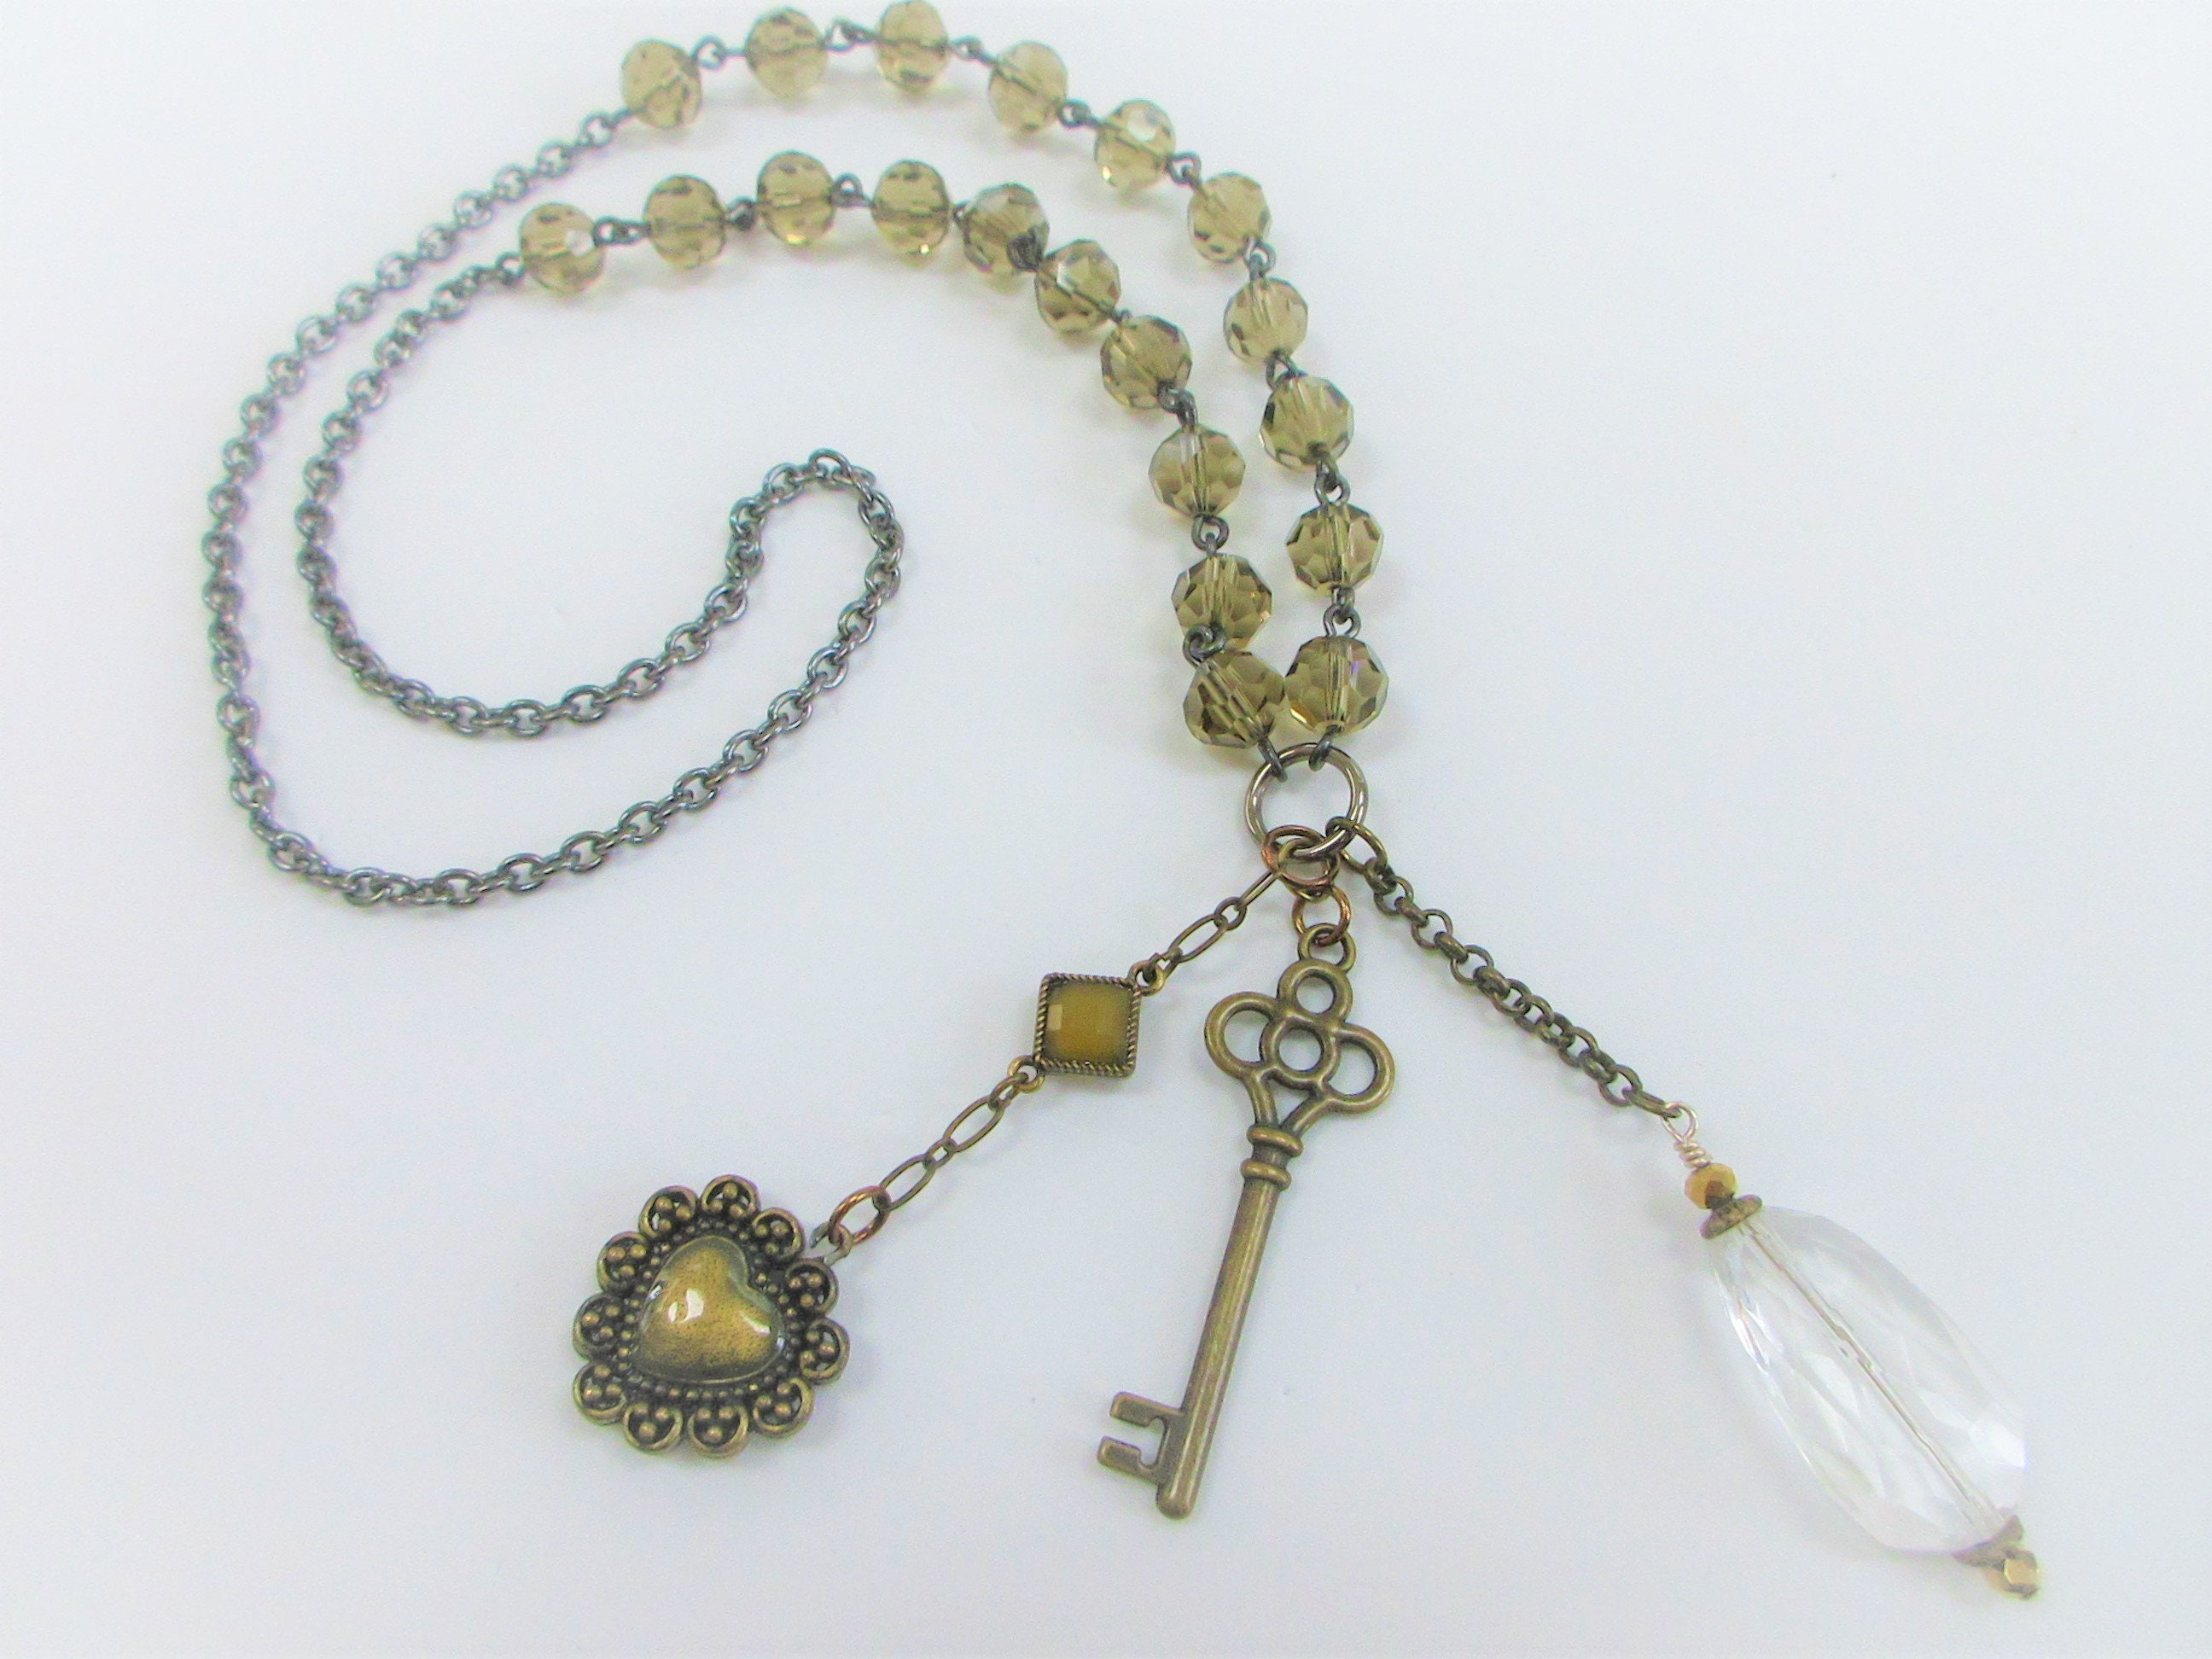 Chandelier Key Heart Olive Crystal Necklaces,Vintage,Handmade,Found object Key Heart Crystal Charms,Repurposed Crystal Glass,Layer Pendants